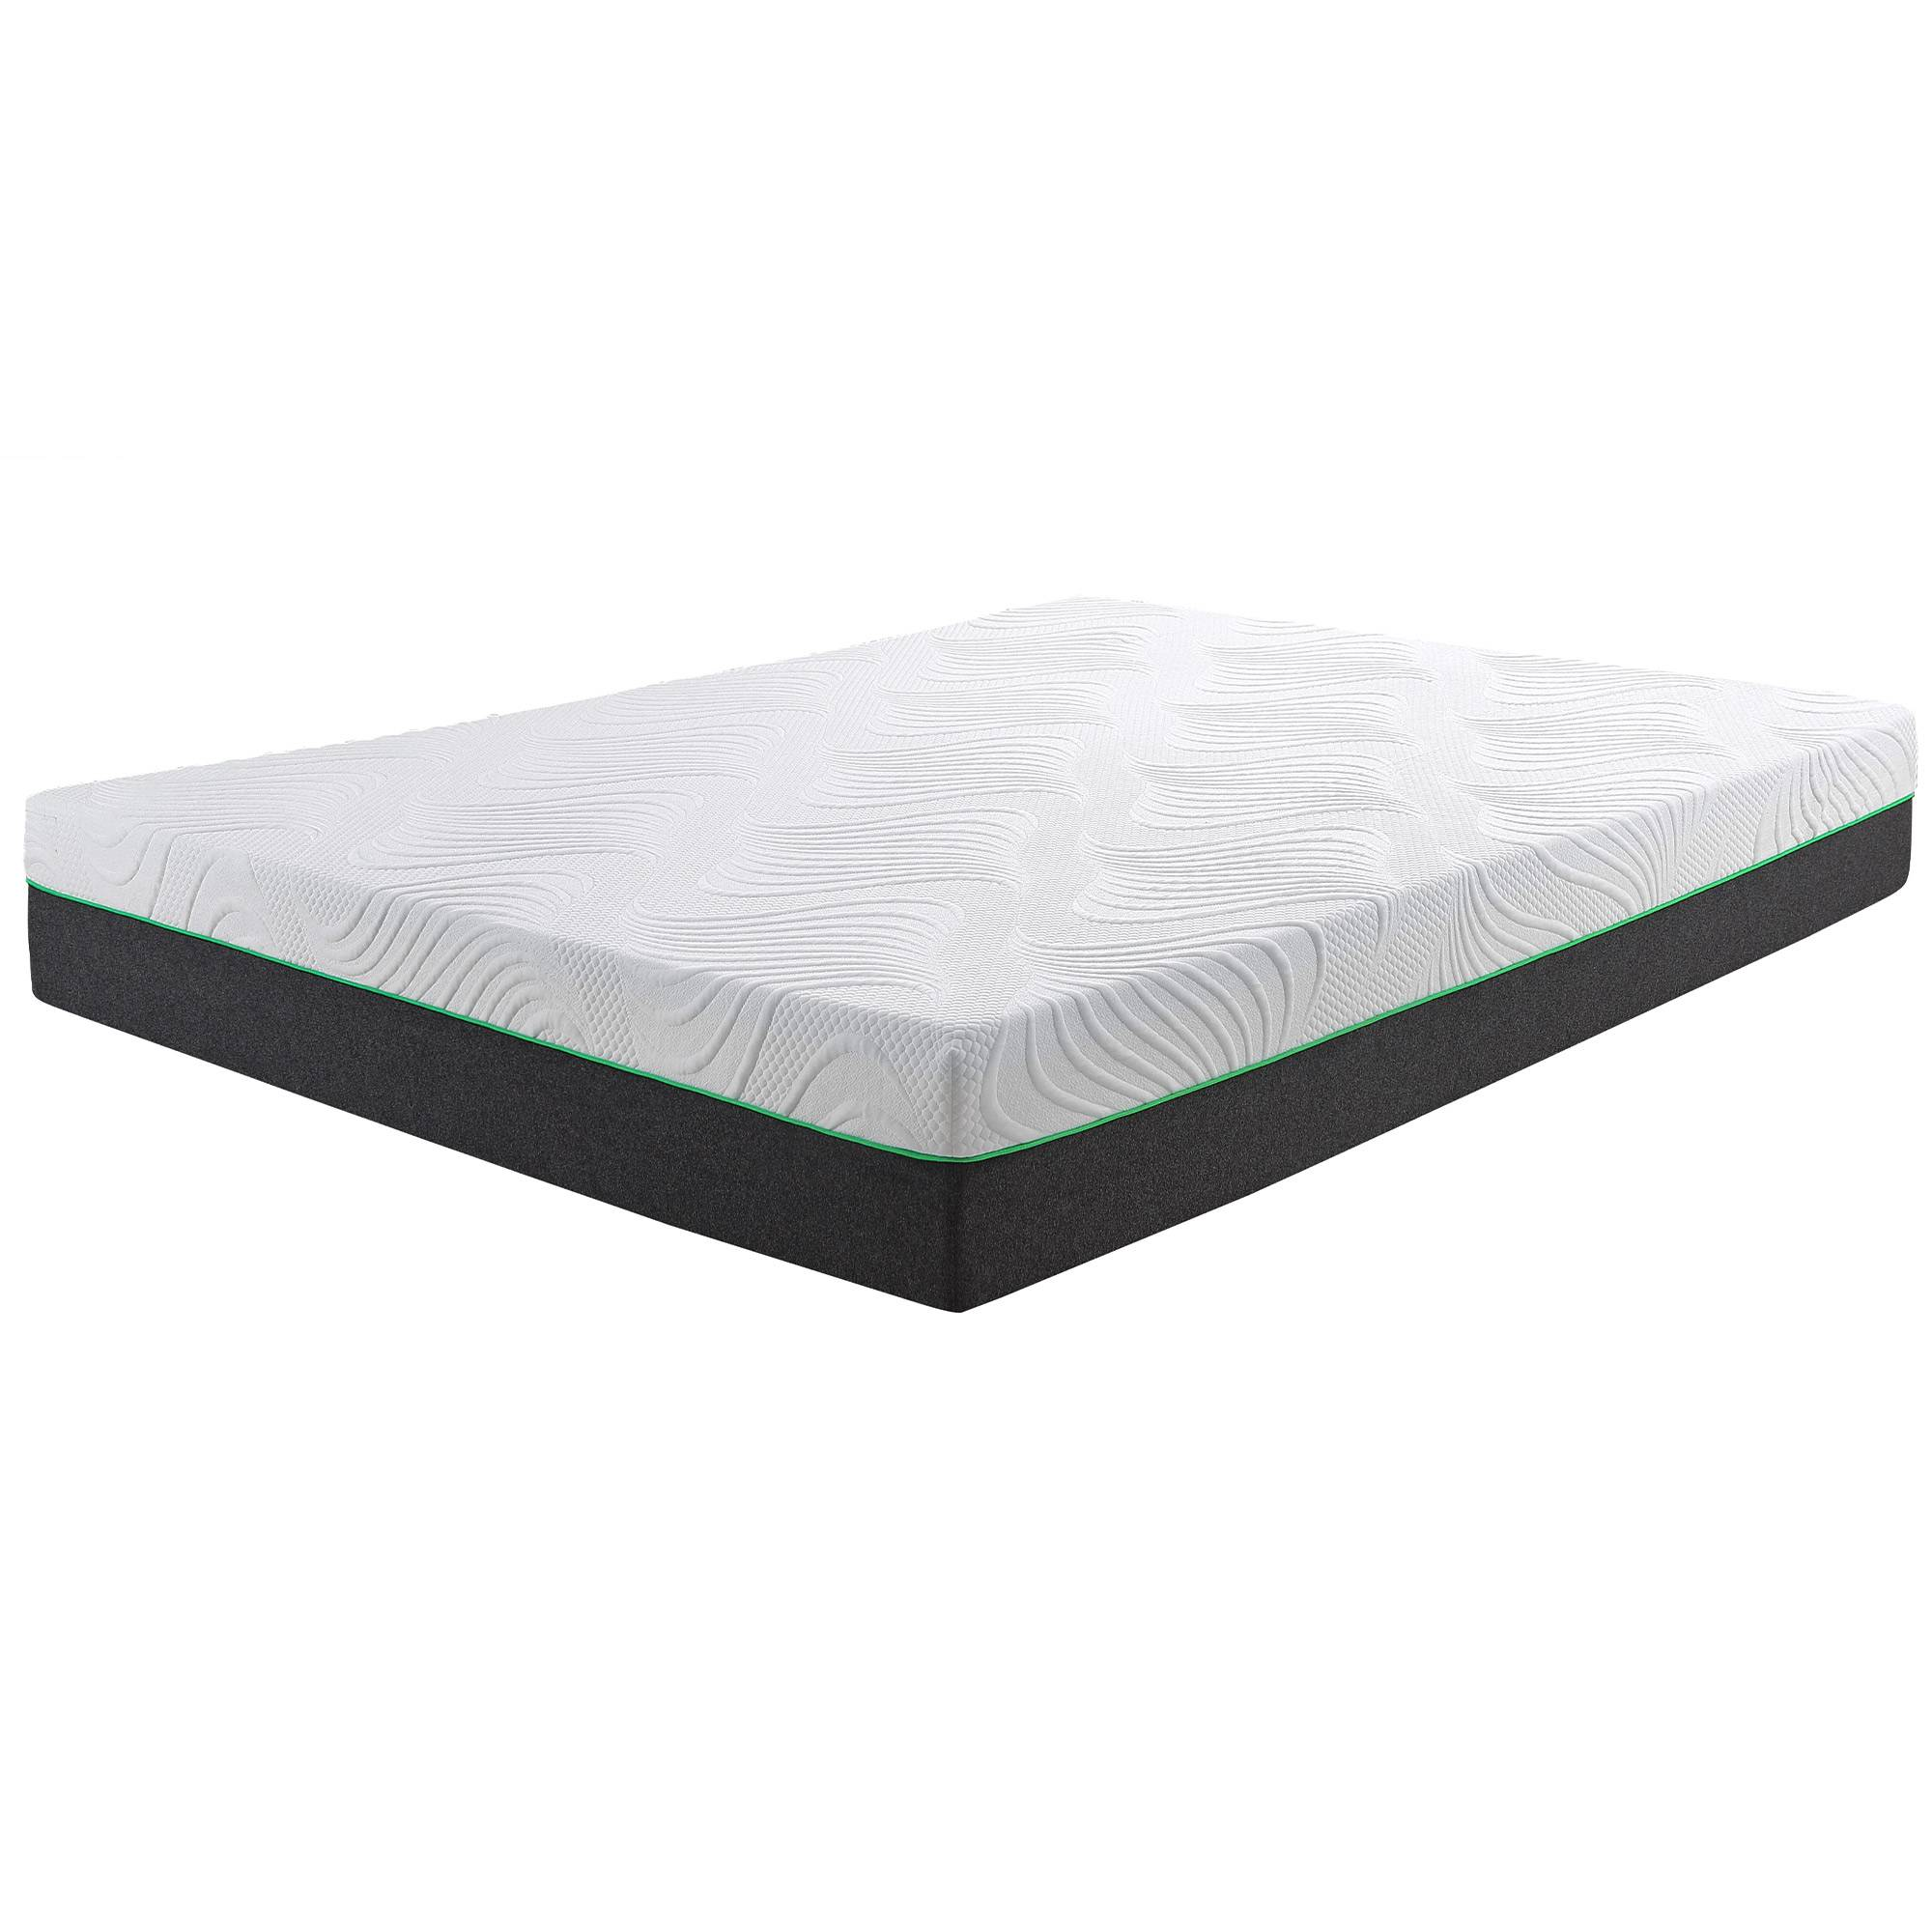 "Medium-firm 10""Back-Care Memory Foam Mattress"